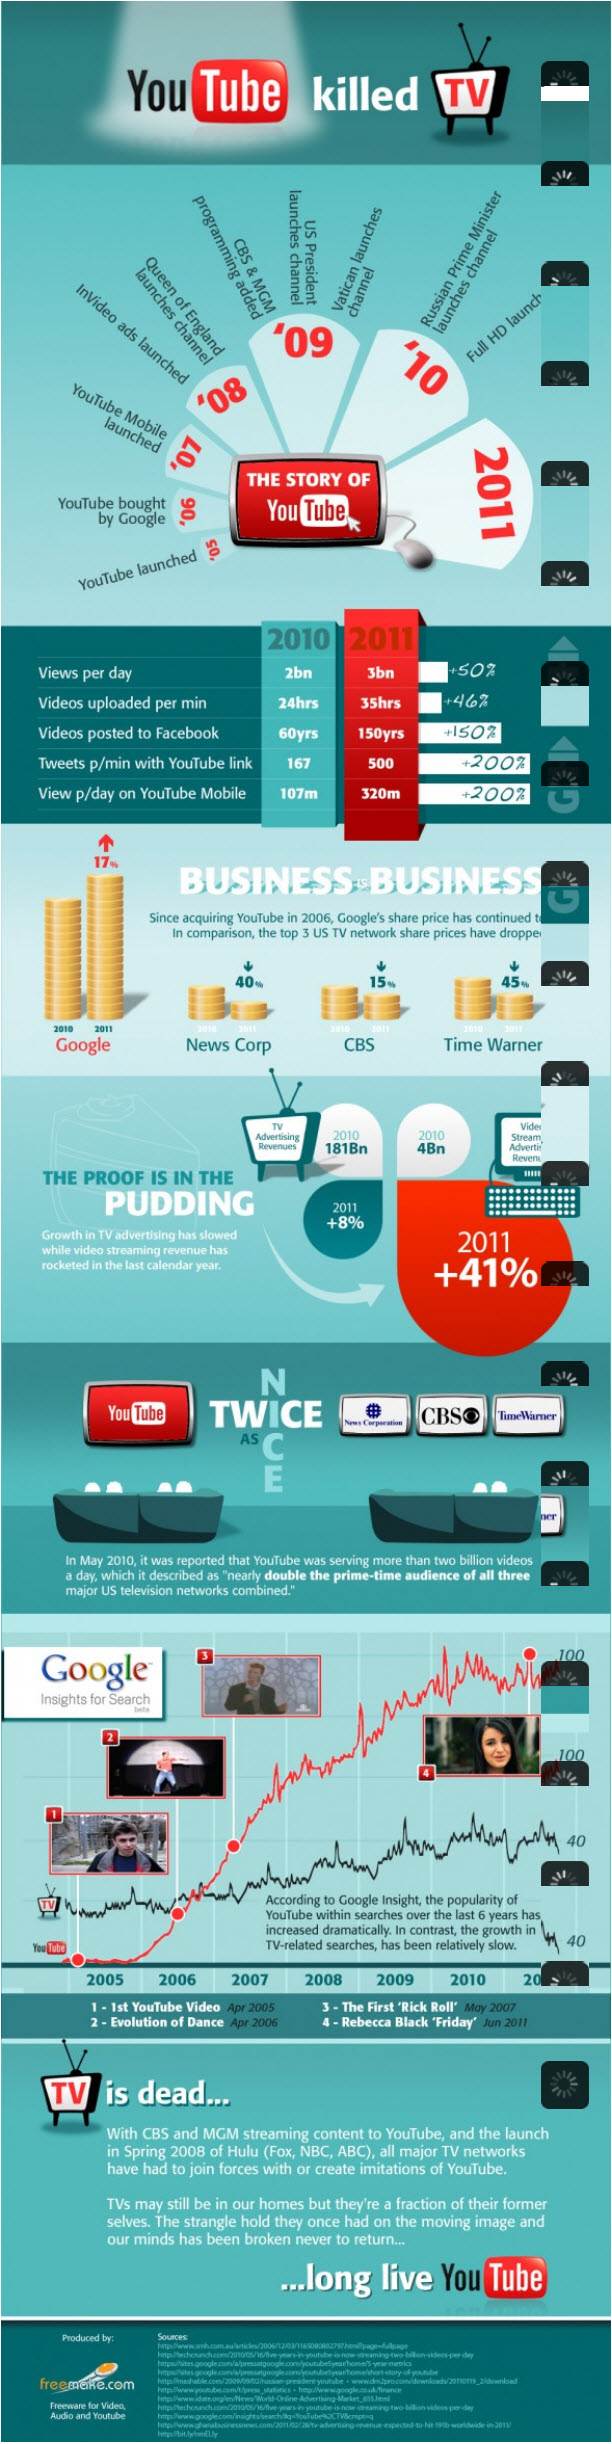 Youtube-Killed-Tv-infographic